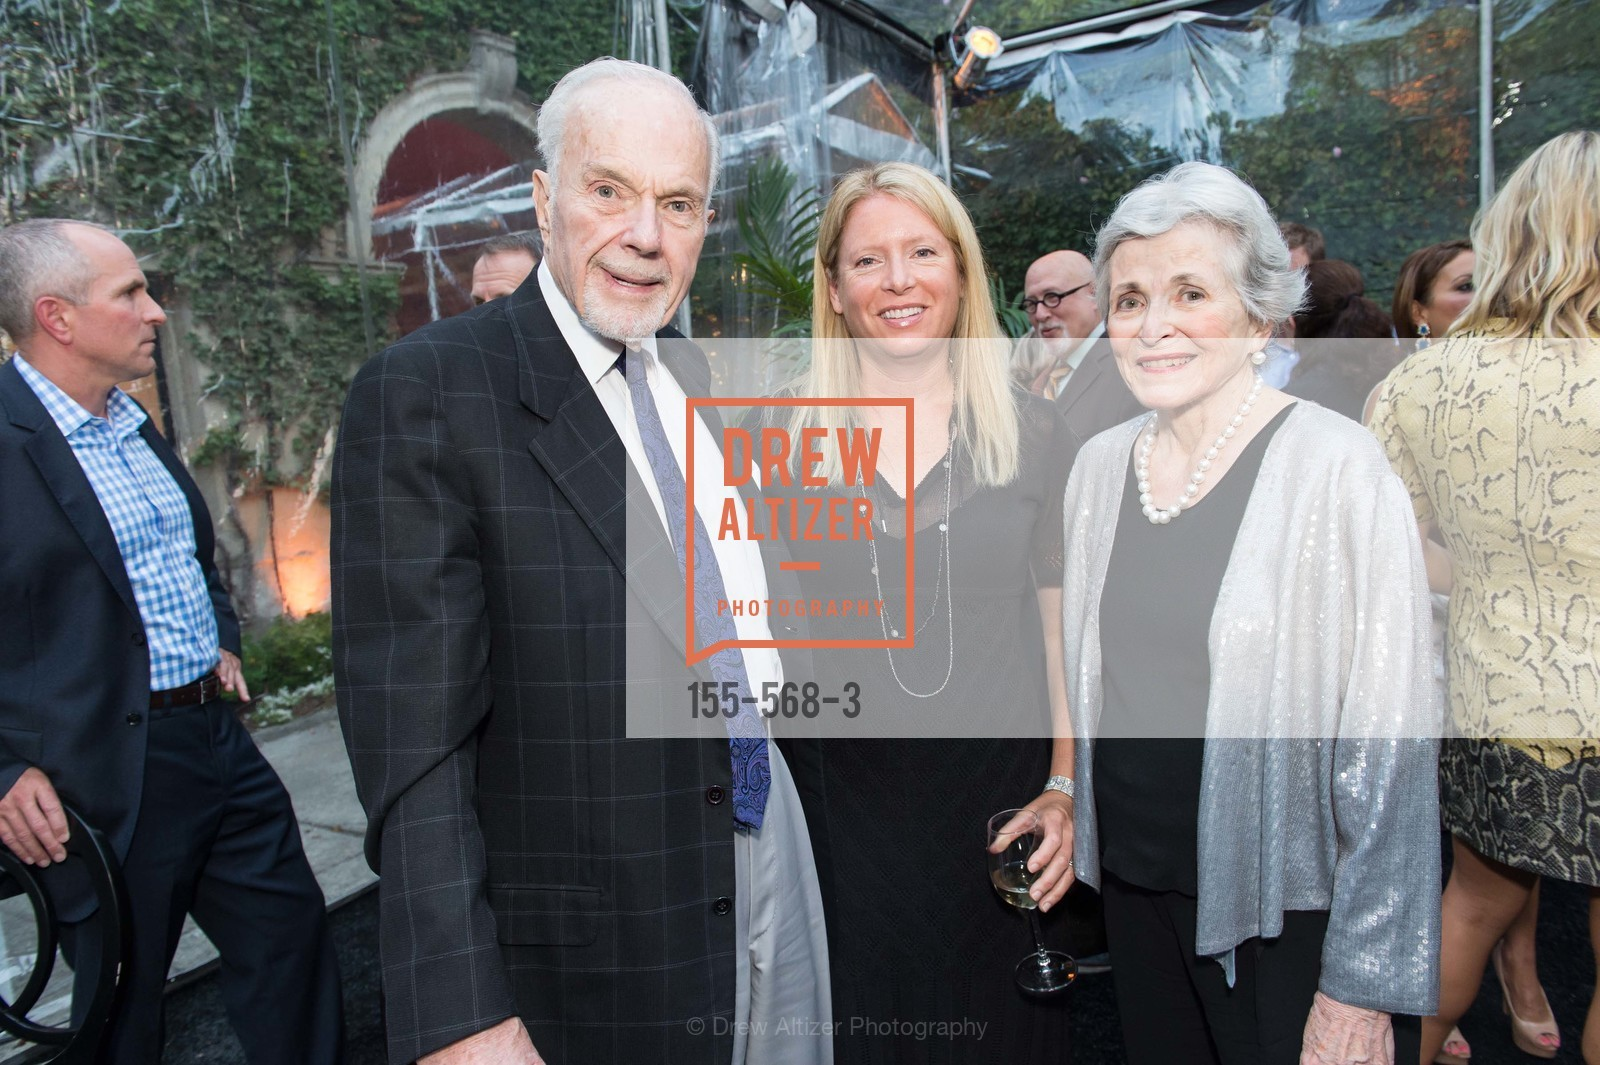 Jim Douglas, Michelle Douglas, Jeanne Douglas, SOTHEBY'S  Hosts a Private Viewing of Highlights from the Collection of MRS. PAUL MELLON, US, September 17th, 2014,Drew Altizer, Drew Altizer Photography, full-service agency, private events, San Francisco photographer, photographer california